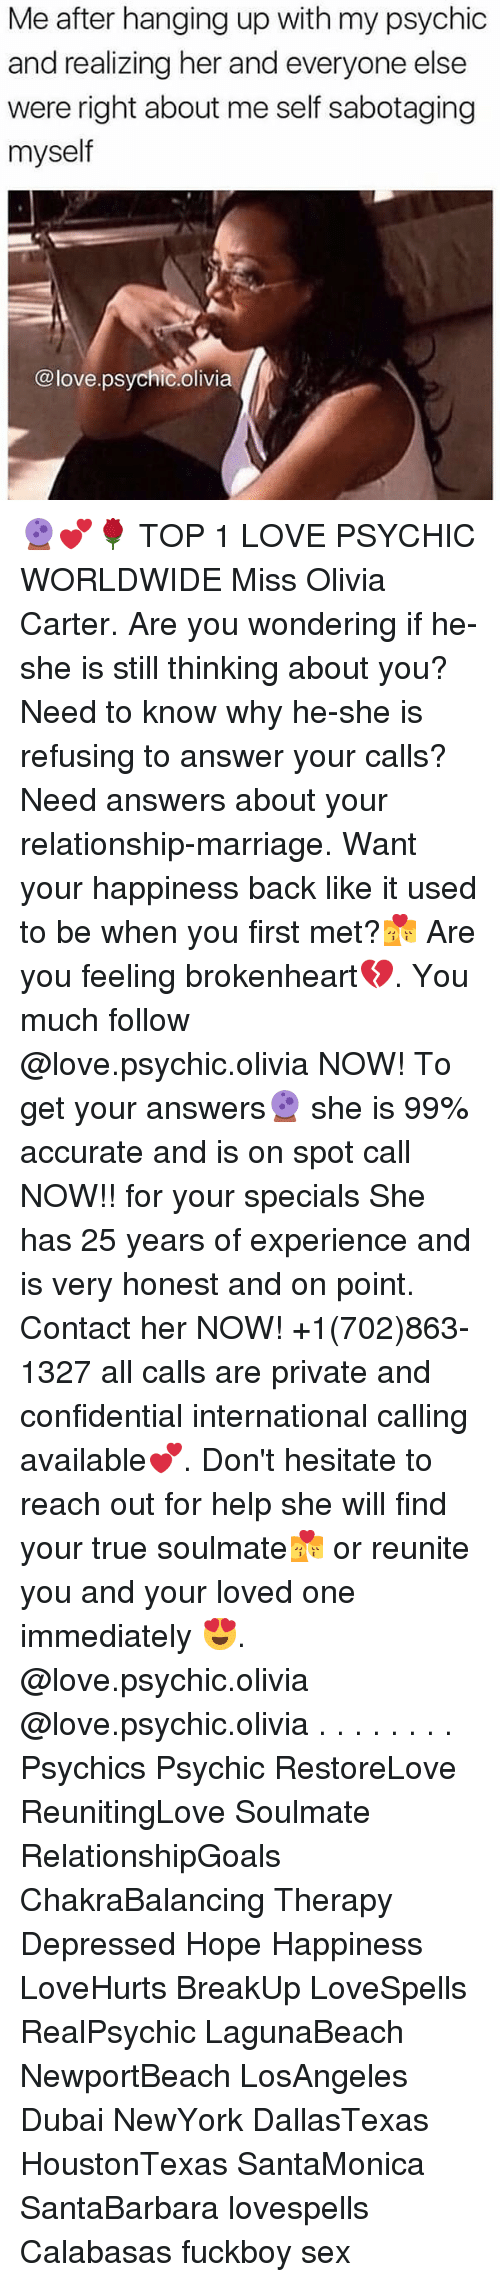 brokenheart: Me after hanging up with my psychic  and realizing her and everyone else  were right about me self sabotaging  myself  @love.psychic.olivia 🔮💕🌹 TOP 1 LOVE PSYCHIC WORLDWIDE Miss Olivia Carter. Are you wondering if he-she is still thinking about you? Need to know why he-she is refusing to answer your calls? Need answers about your relationship-marriage. Want your happiness back like it used to be when you first met?💏 Are you feeling brokenheart💔. You much follow @love.psychic.olivia NOW! To get your answers🔮 she is 99% accurate and is on spot call NOW!! for your specials She has 25 years of experience and is very honest and on point. Contact her NOW! +1(702)863-1327 all calls are private and confidential international calling available💕. Don't hesitate to reach out for help she will find your true soulmate💏 or reunite you and your loved one immediately 😍. @love.psychic.olivia @love.psychic.olivia . . . . . . . . Psychics Psychic RestoreLove ReunitingLove Soulmate RelationshipGoals ChakraBalancing Therapy Depressed Hope Happiness LoveHurts BreakUp LoveSpells RealPsychic LagunaBeach NewportBeach LosAngeles Dubai NewYork DallasTexas HoustonTexas SantaMonica SantaBarbara lovespells Calabasas fuckboy sex